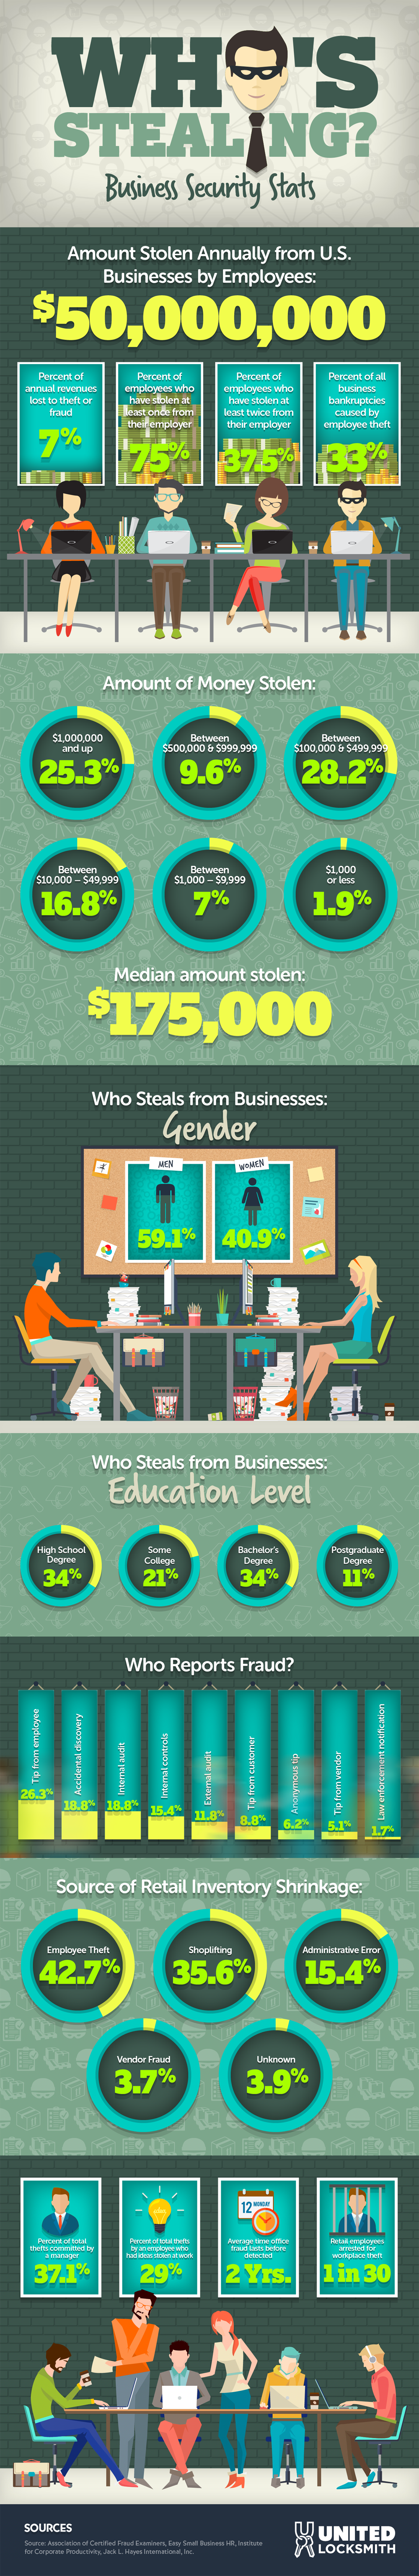 Business Security Statistics Infographic